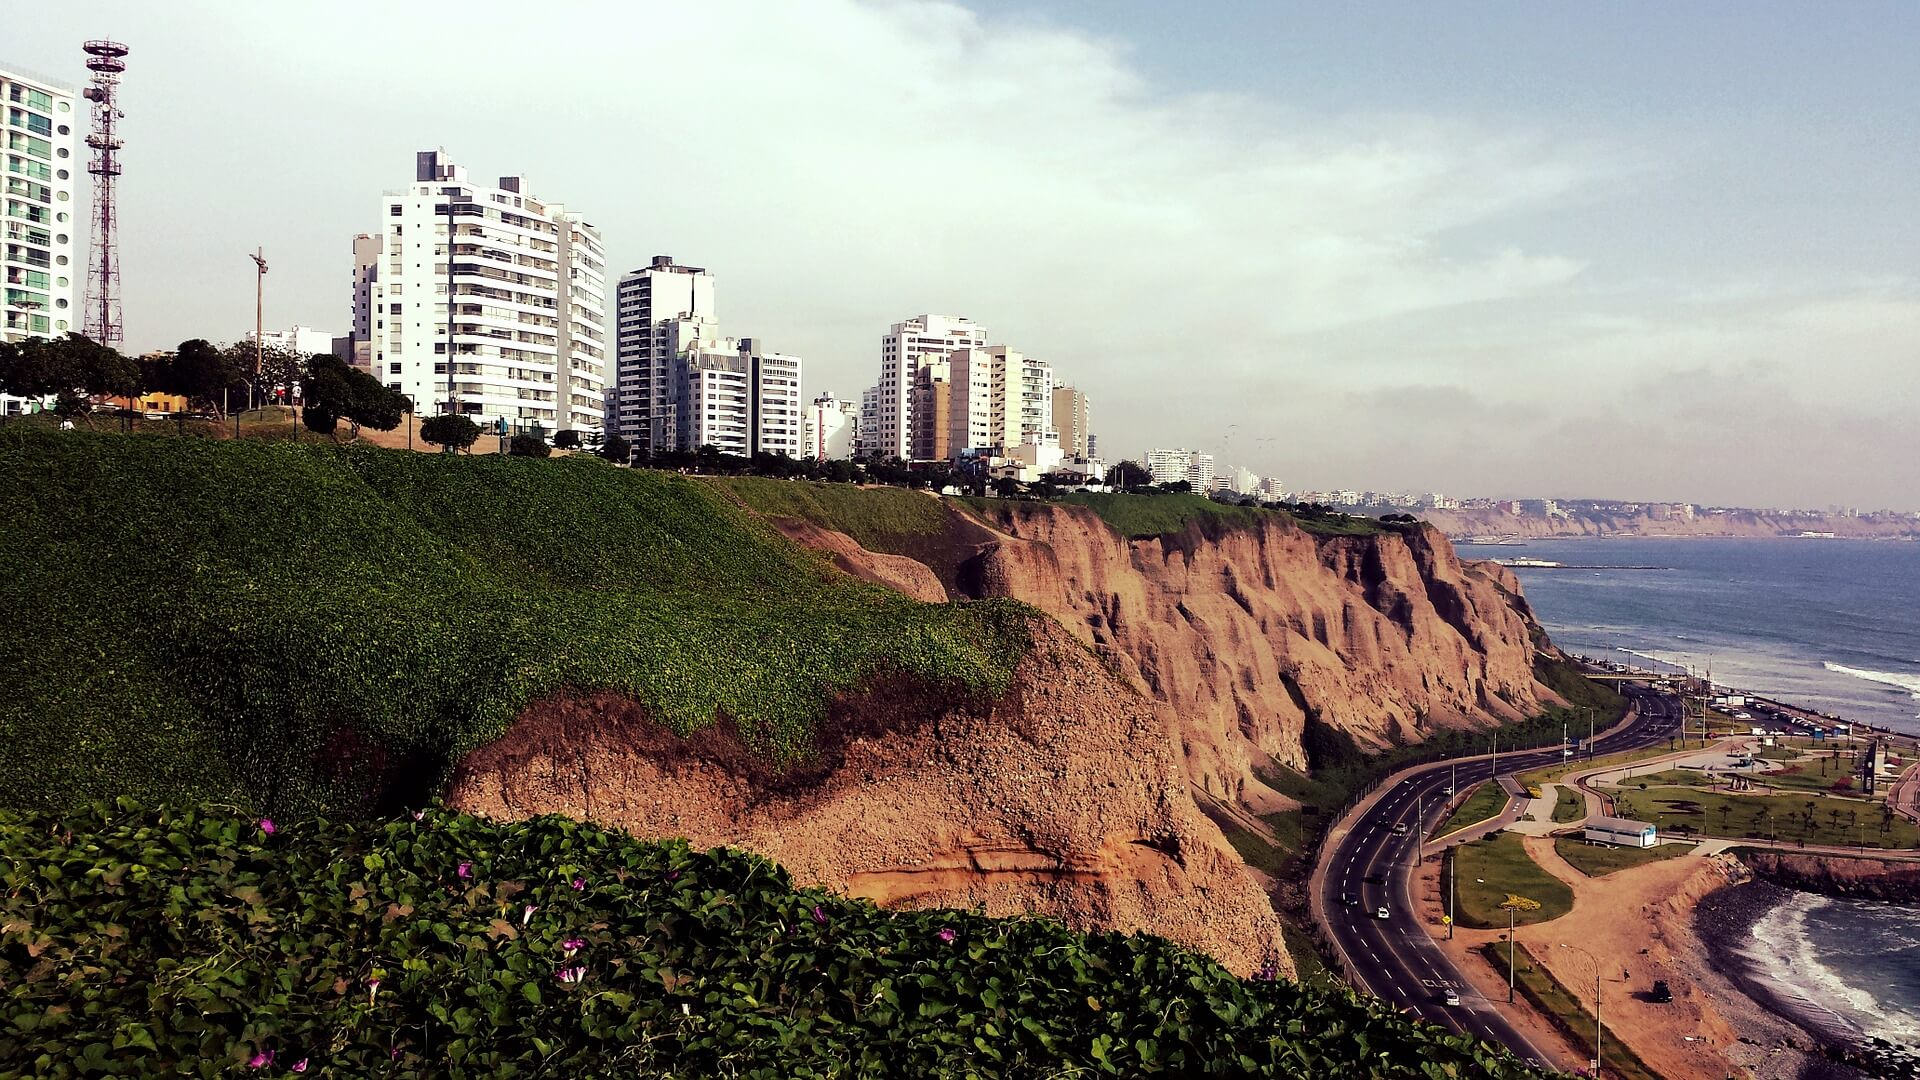 Looking at the Miraflores district from the coastline